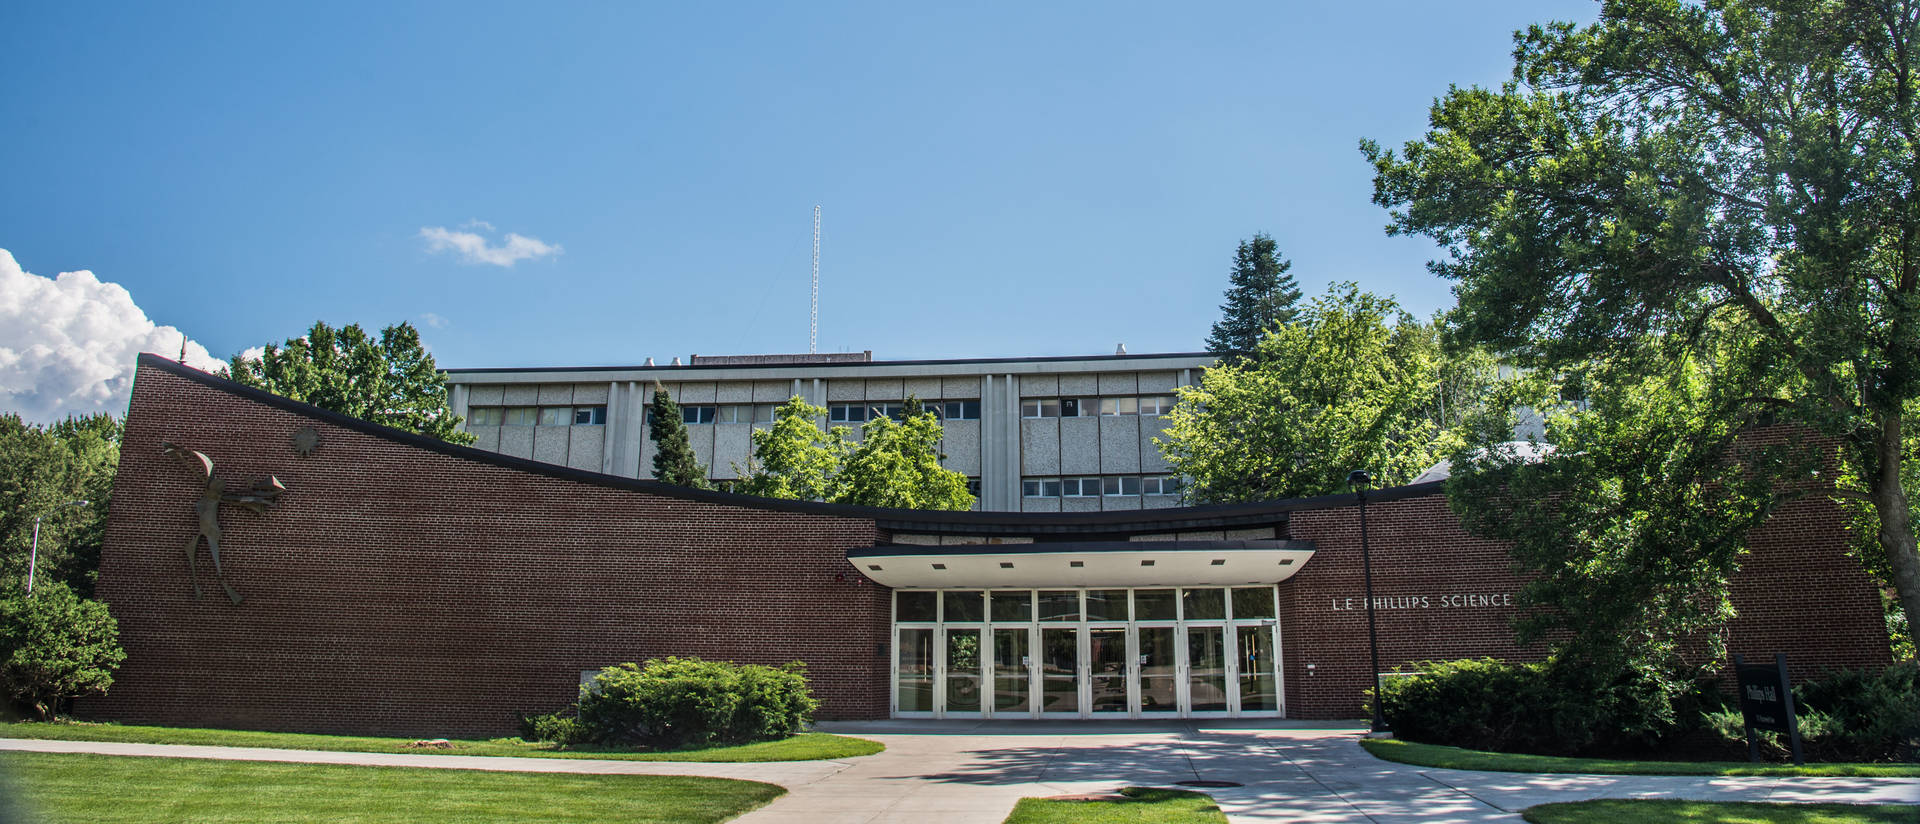 Phillips Science Hall at UW-Eau Claire